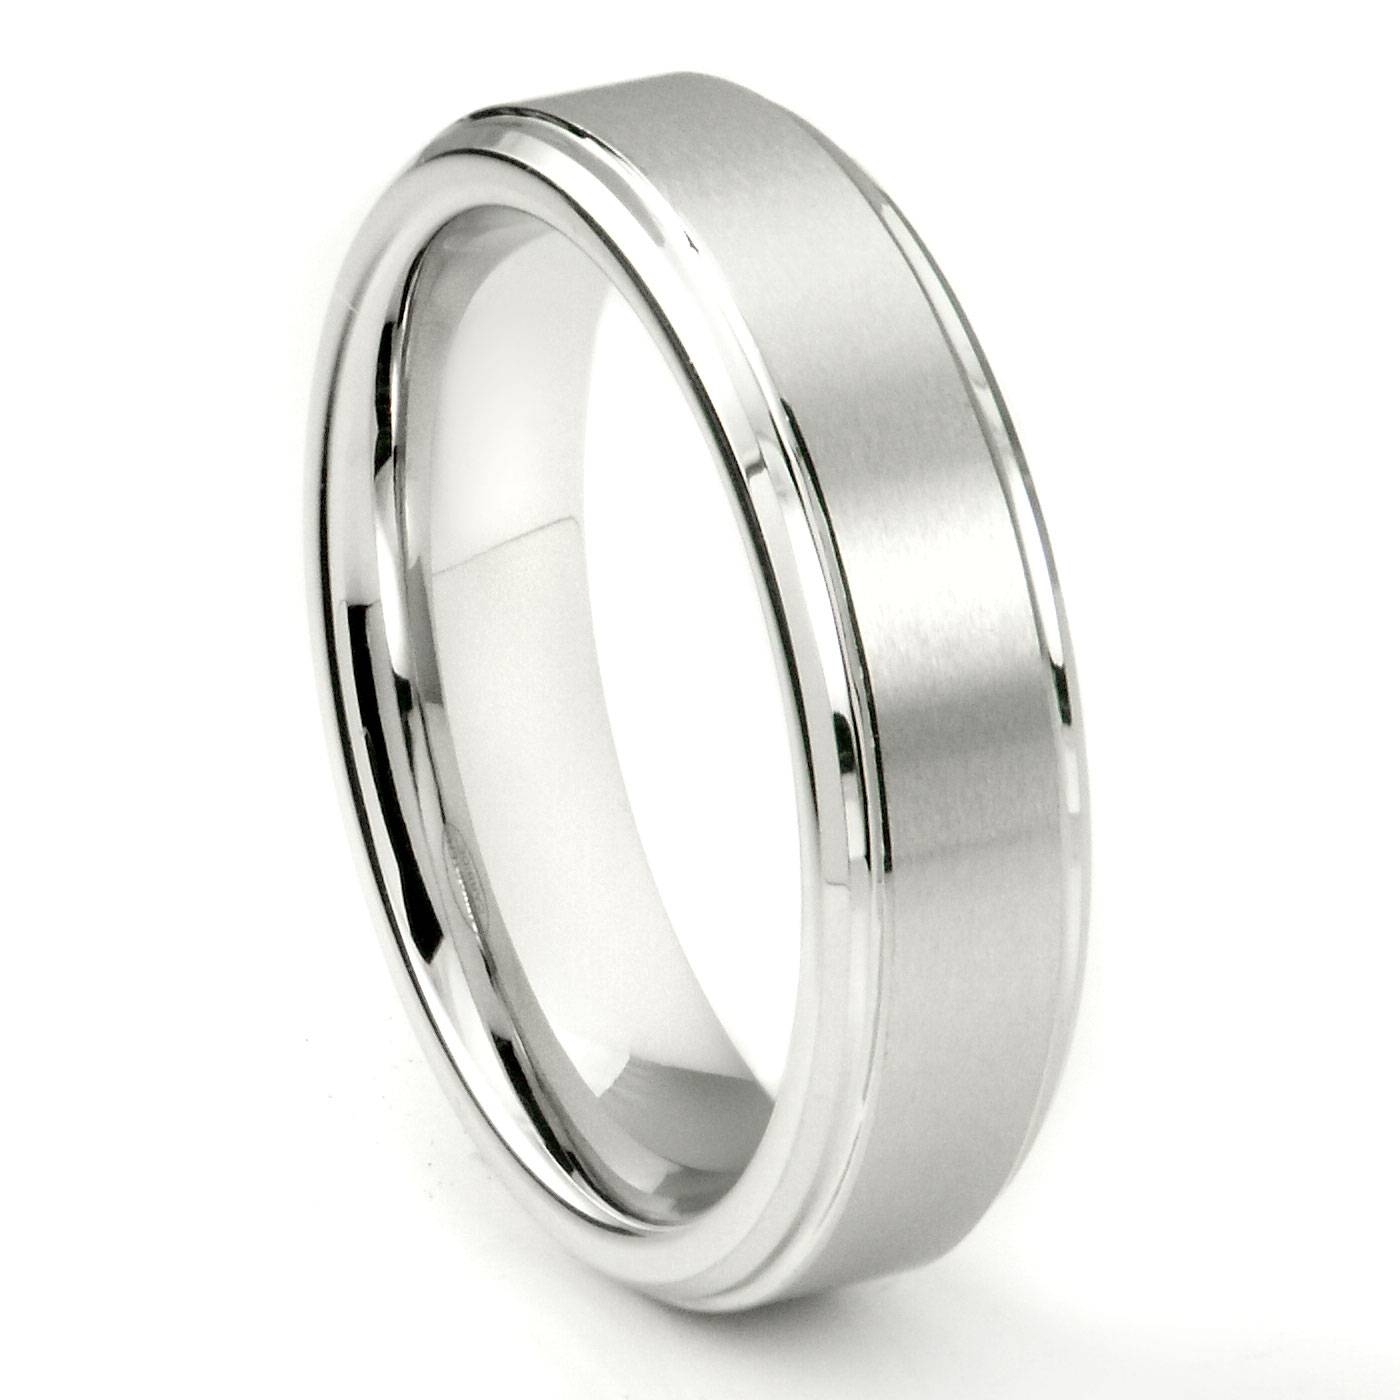 White Tungsten Carbide 6Mm Wedding Band Ring W/ Raised Center Intended For Tungsten Wedding Bands (View 14 of 15)